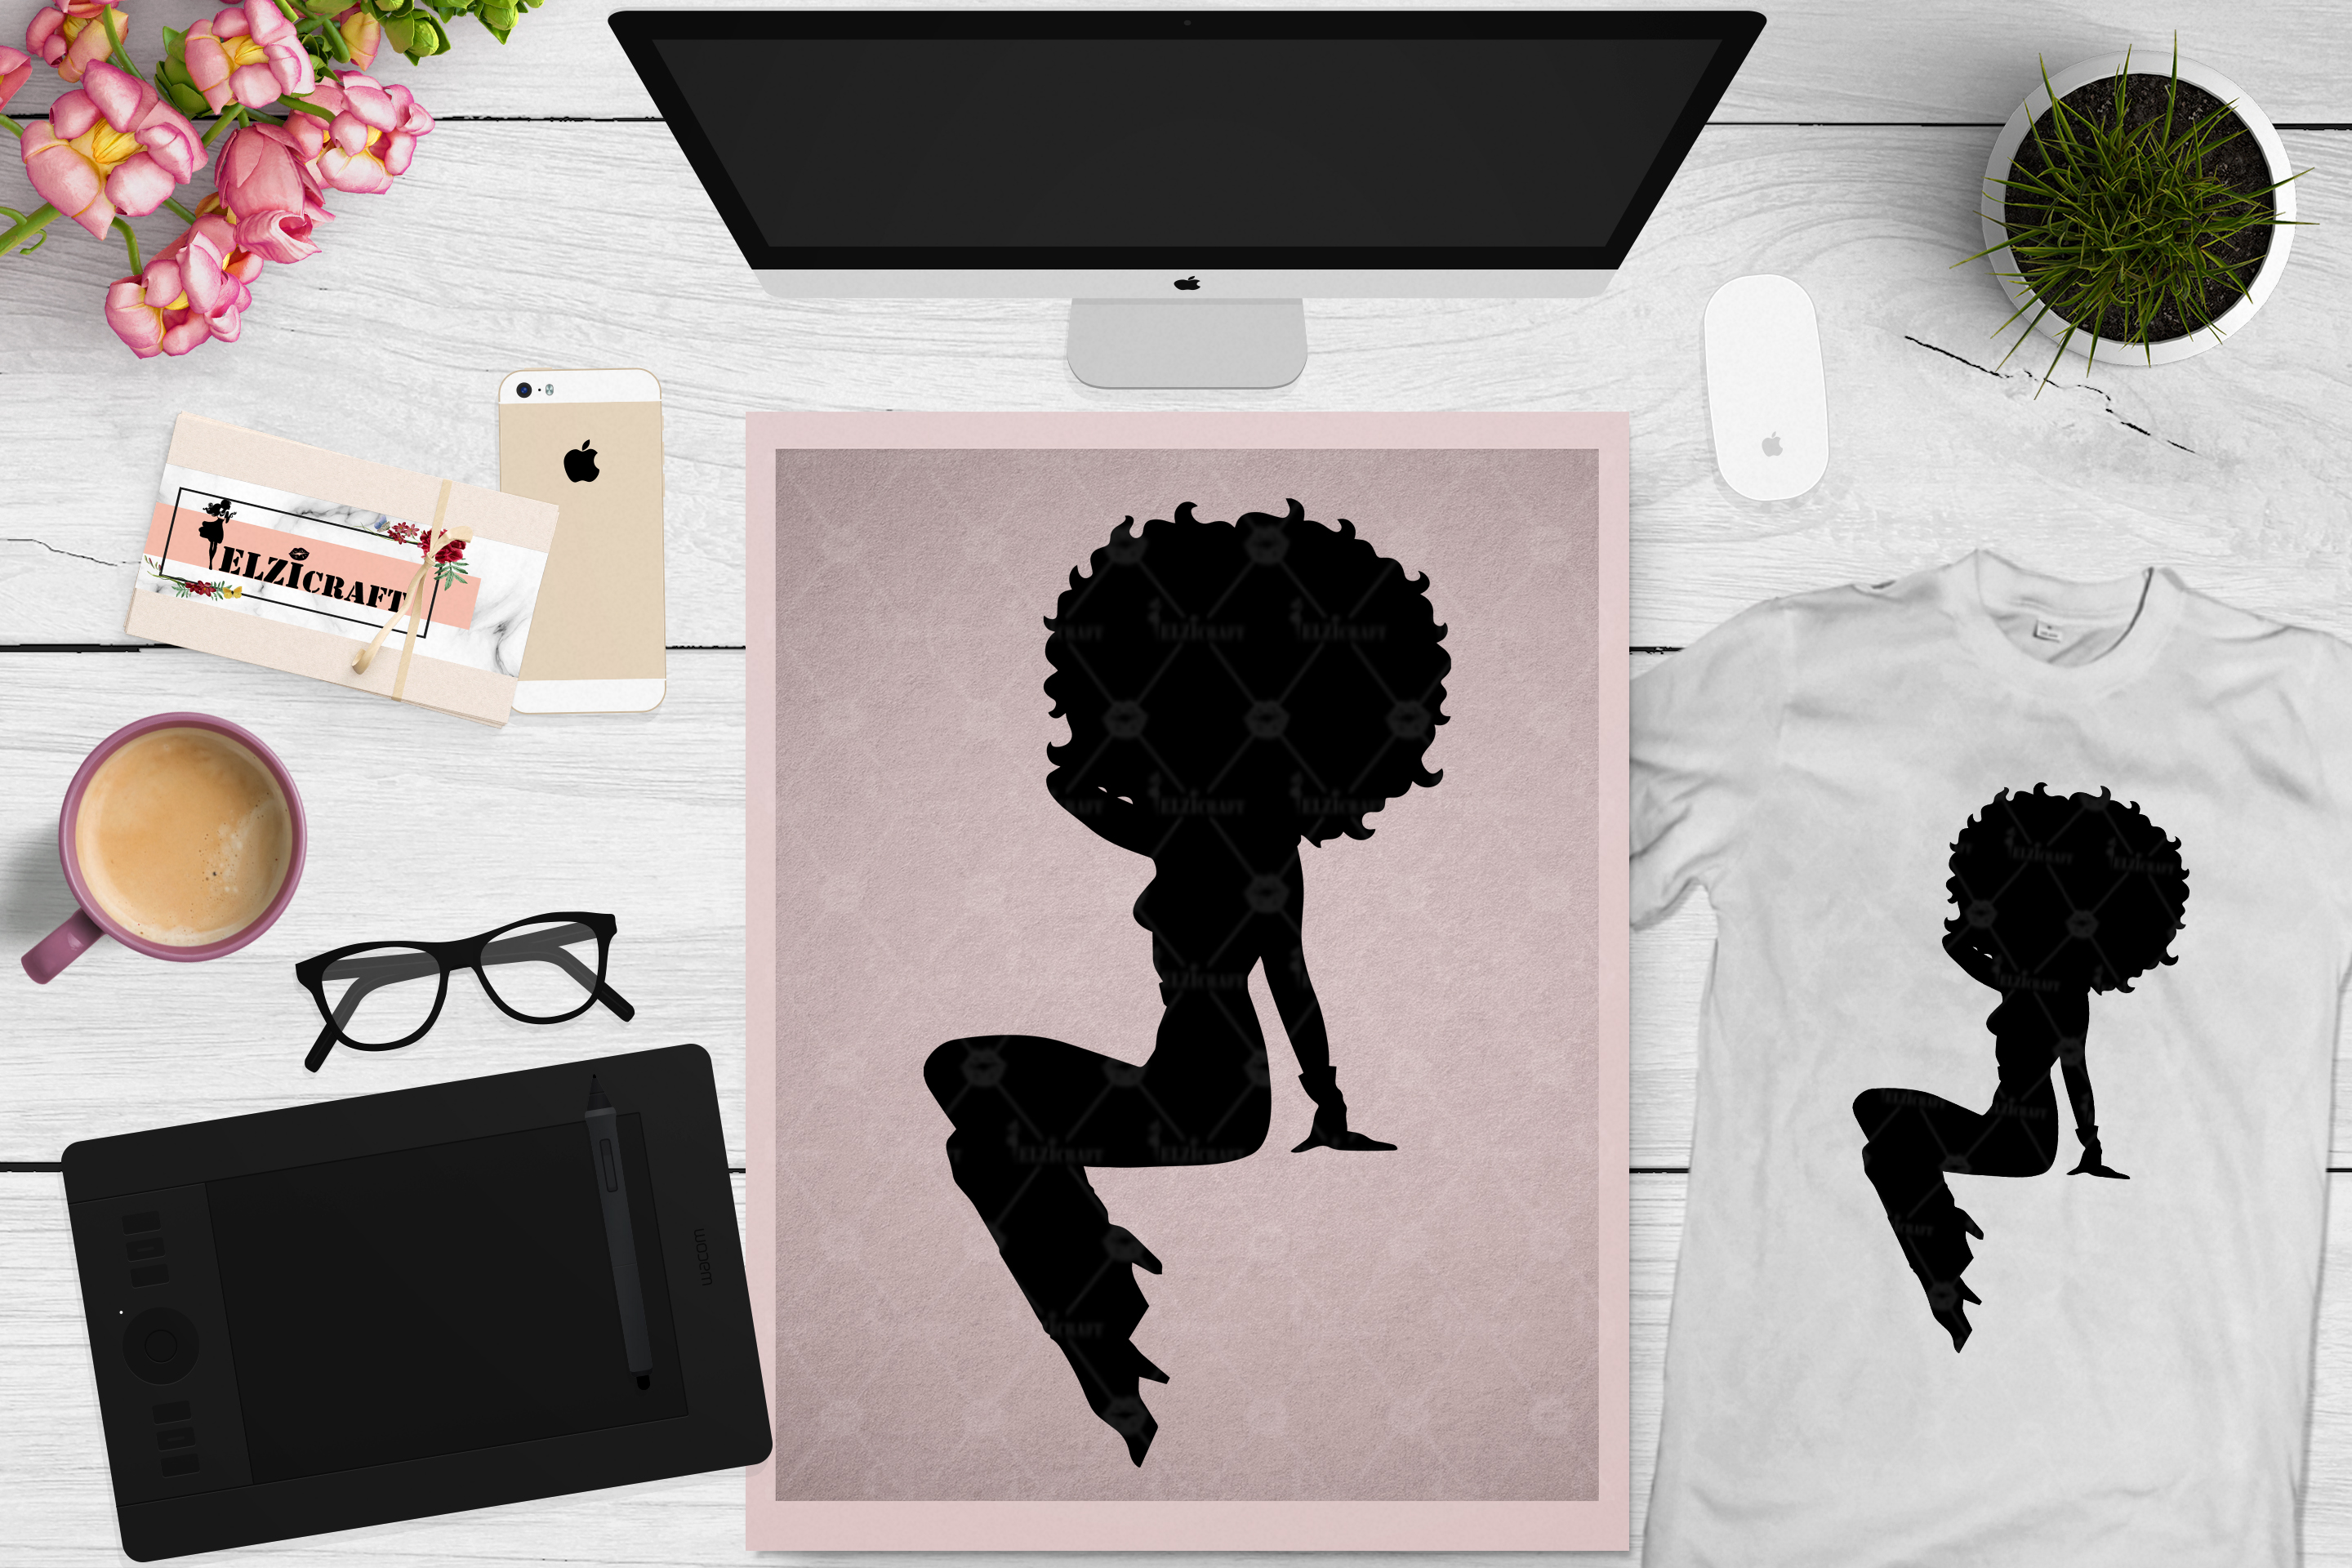 Download Free Afro Woman Sitting Silhouette Graphic By Elzicraft Creative for Cricut Explore, Silhouette and other cutting machines.